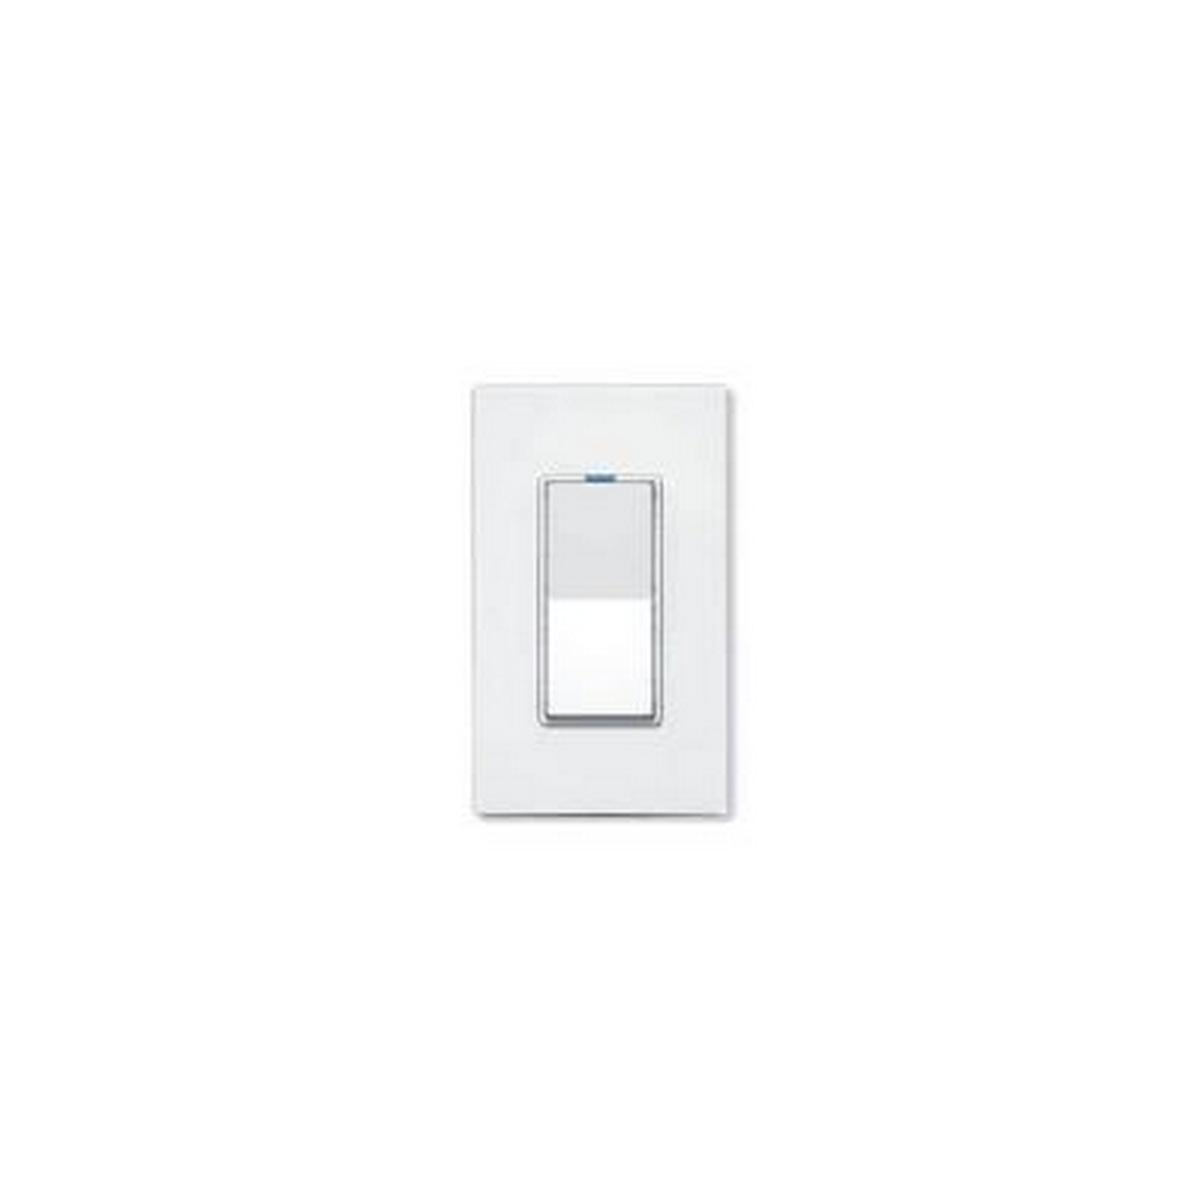 PulseWorx - Wall Switch/Dimmer-2400W/20A